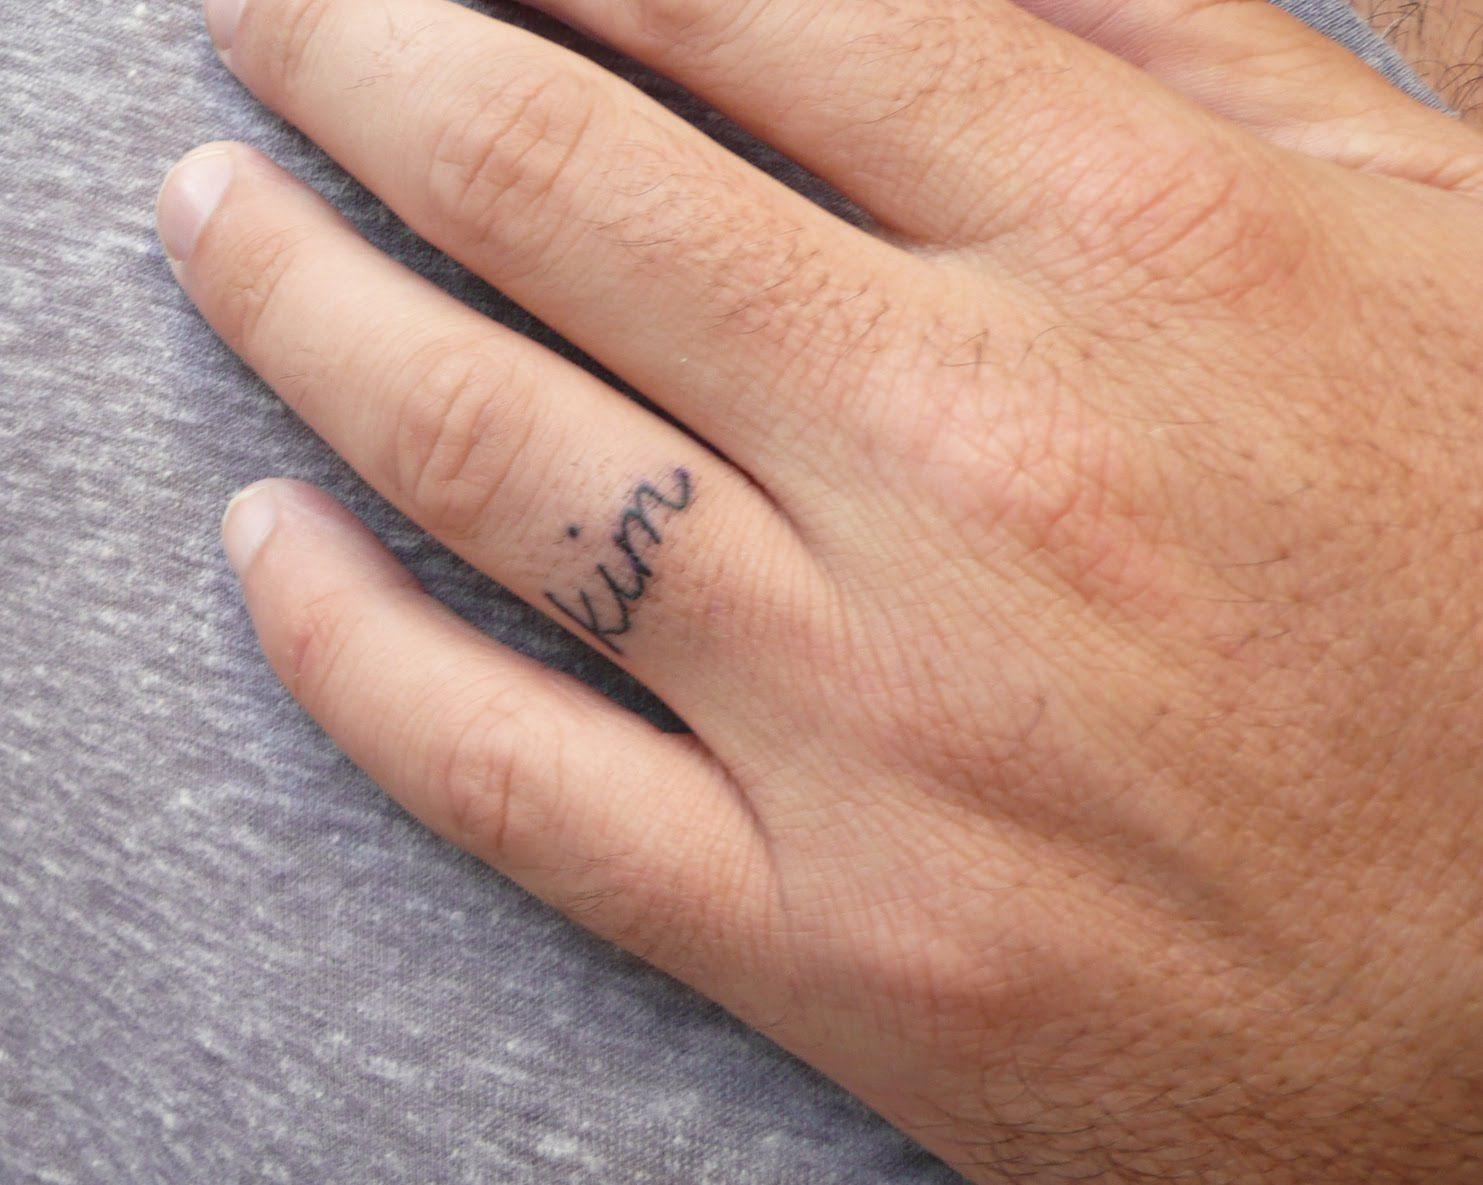 Usually In Modern Days Married Or Engaged S Go For Wedding Finger Tattoos